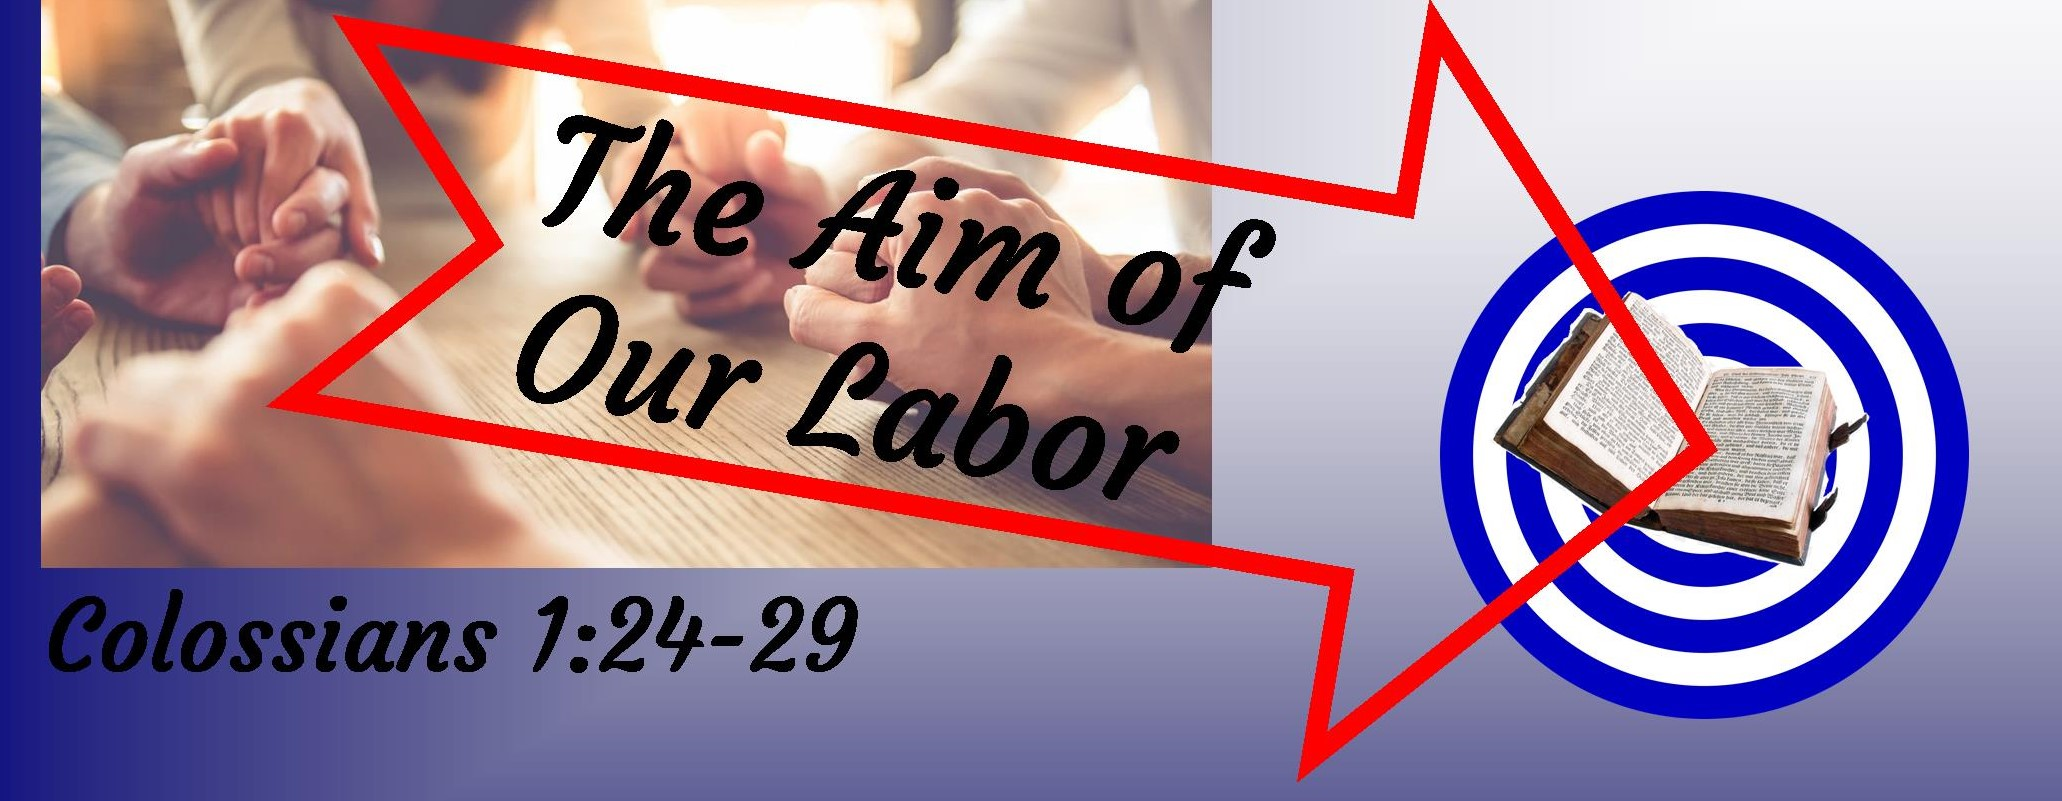 "051219-The Aim of our Labor, Colossians 1:24-29. Presented by David McCord, Elder. The aim of our labor is to present everyone mature in Christ. The Actions of a Disciple Maker:1. Proclaim 2. Present 3. Labor. 1st Thessalonians 1:3-5 ""We recall, in the presence of our God and Father, your work of faith, labor of love, and endurance of hope in our Lord Jesus Christ, knowing your election, brothers loved by God. For our gospel did not come to you in word only, but also in power, in the Holy Spirit, and with much assurance."""